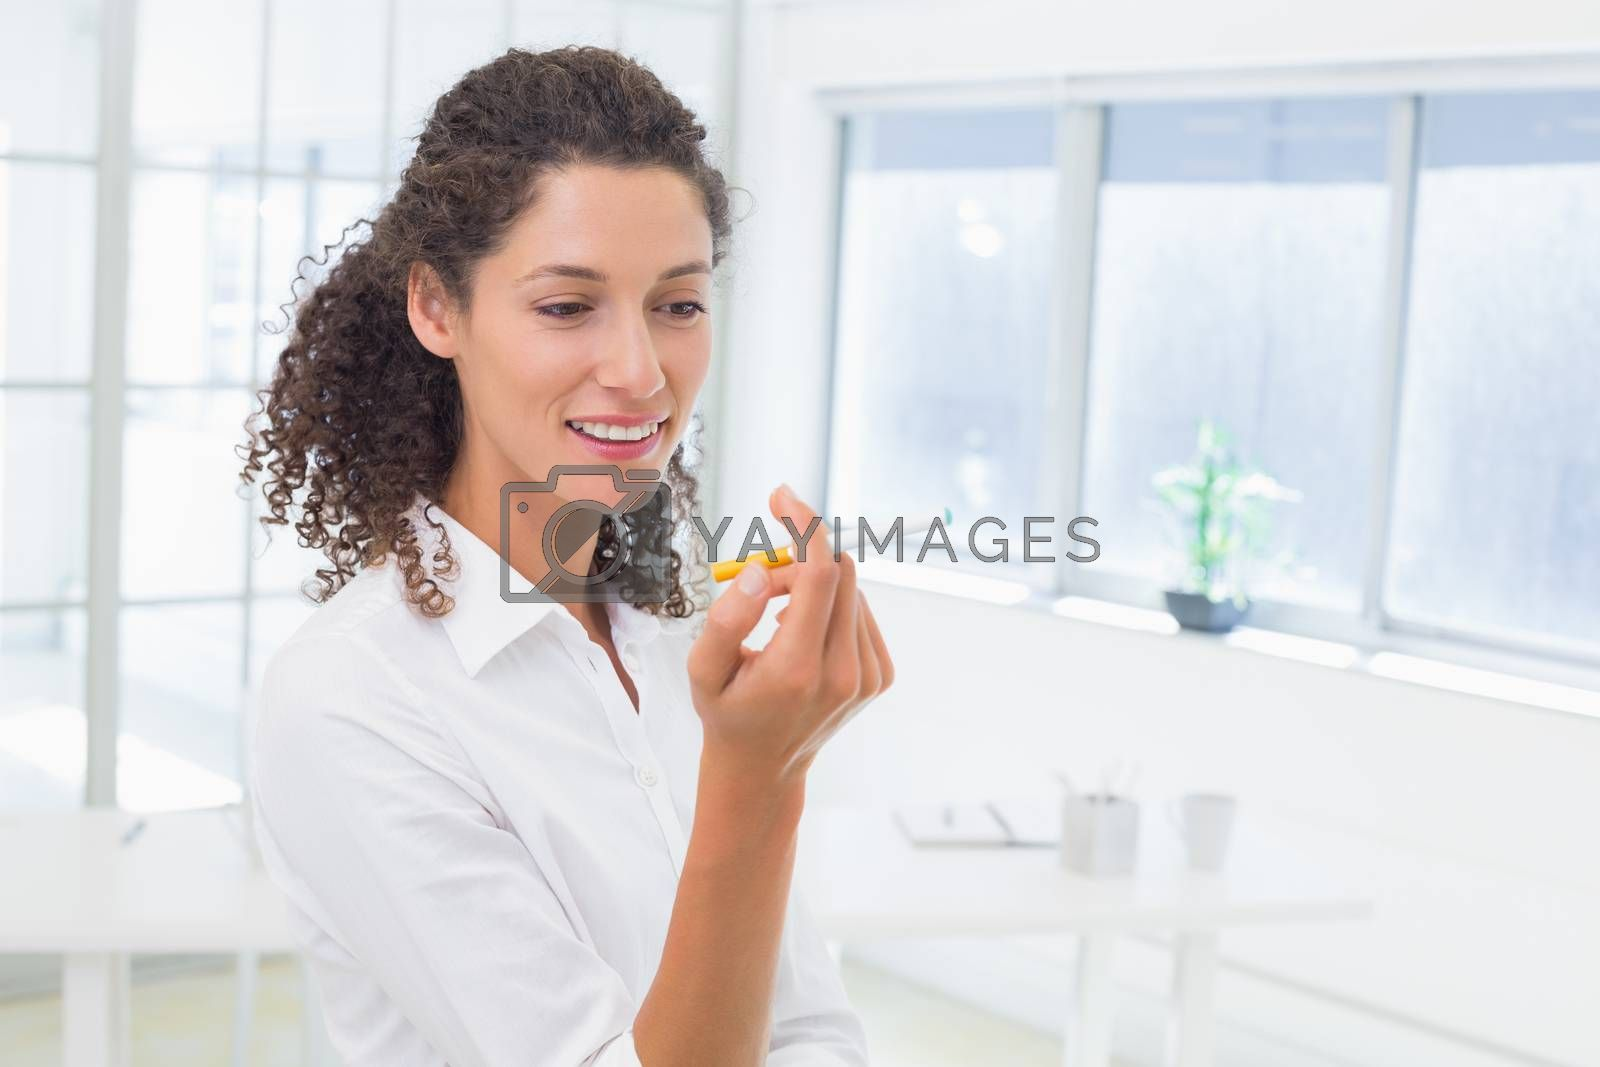 Royalty free image of Casual businesswoman looking at her electronic cigarette by Wavebreakmedia